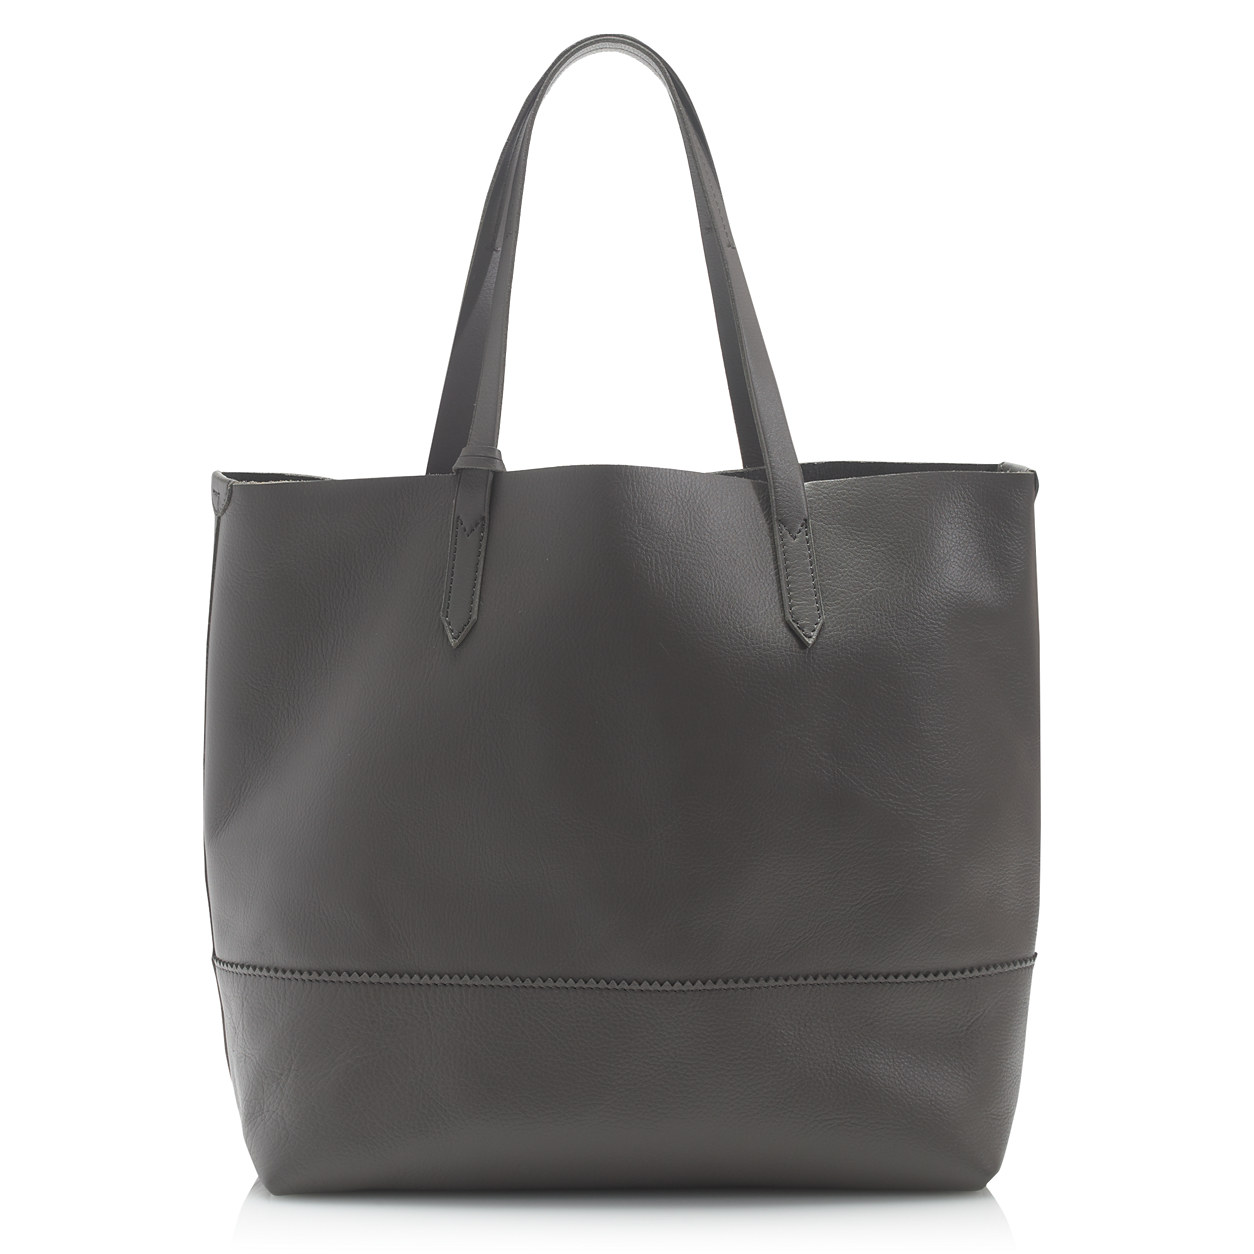 https://www.jcrew.com/womens_category/handbags/totes/PRDOVR~A4399/A4399.jsp?color_name=cocoa